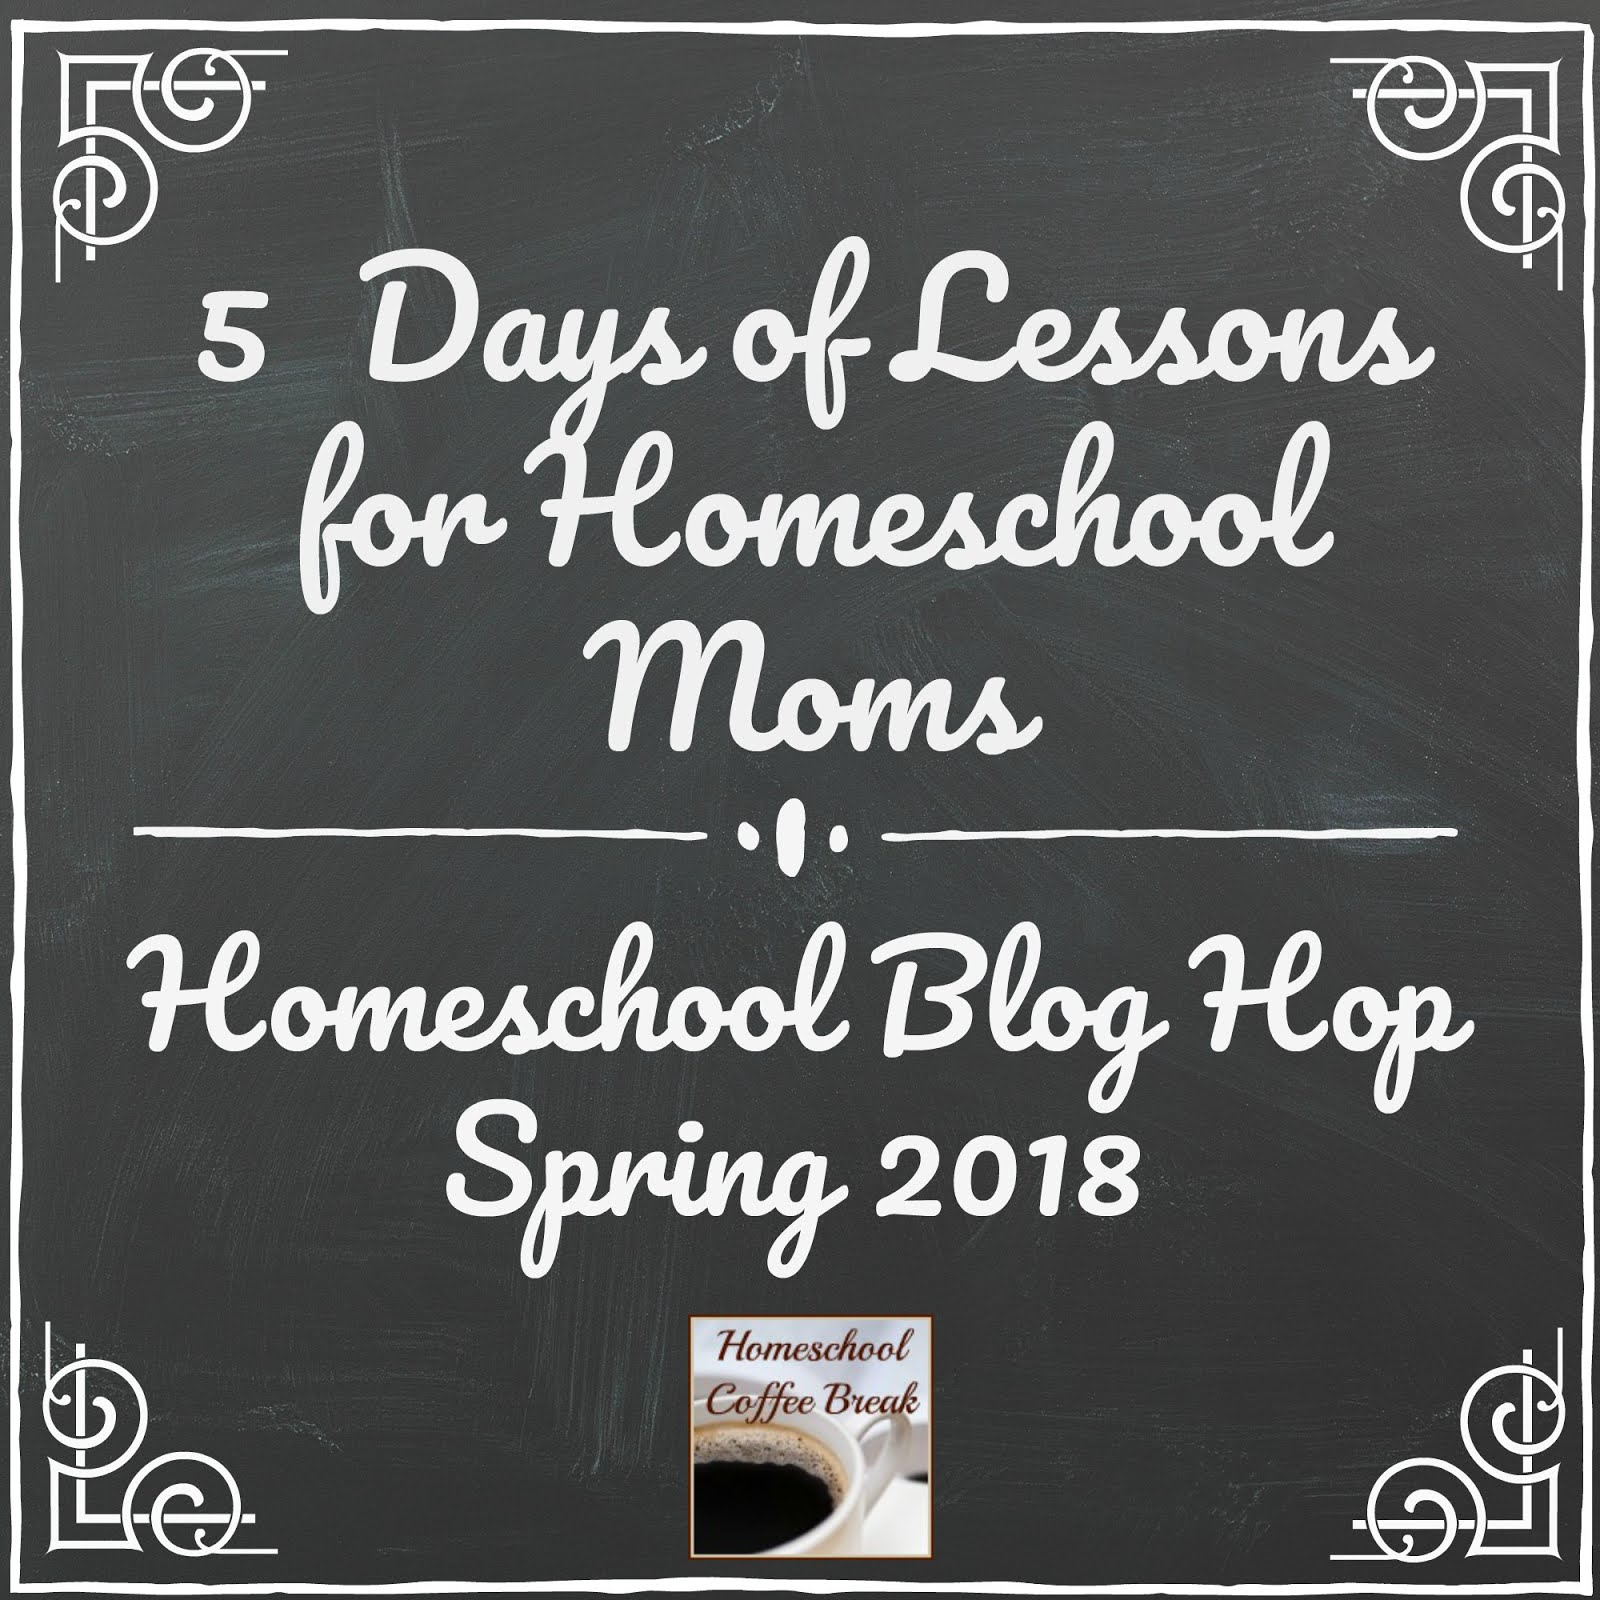 5 Days of Lessons for Homeschool Moms (Spring 2018 Blog Hop)